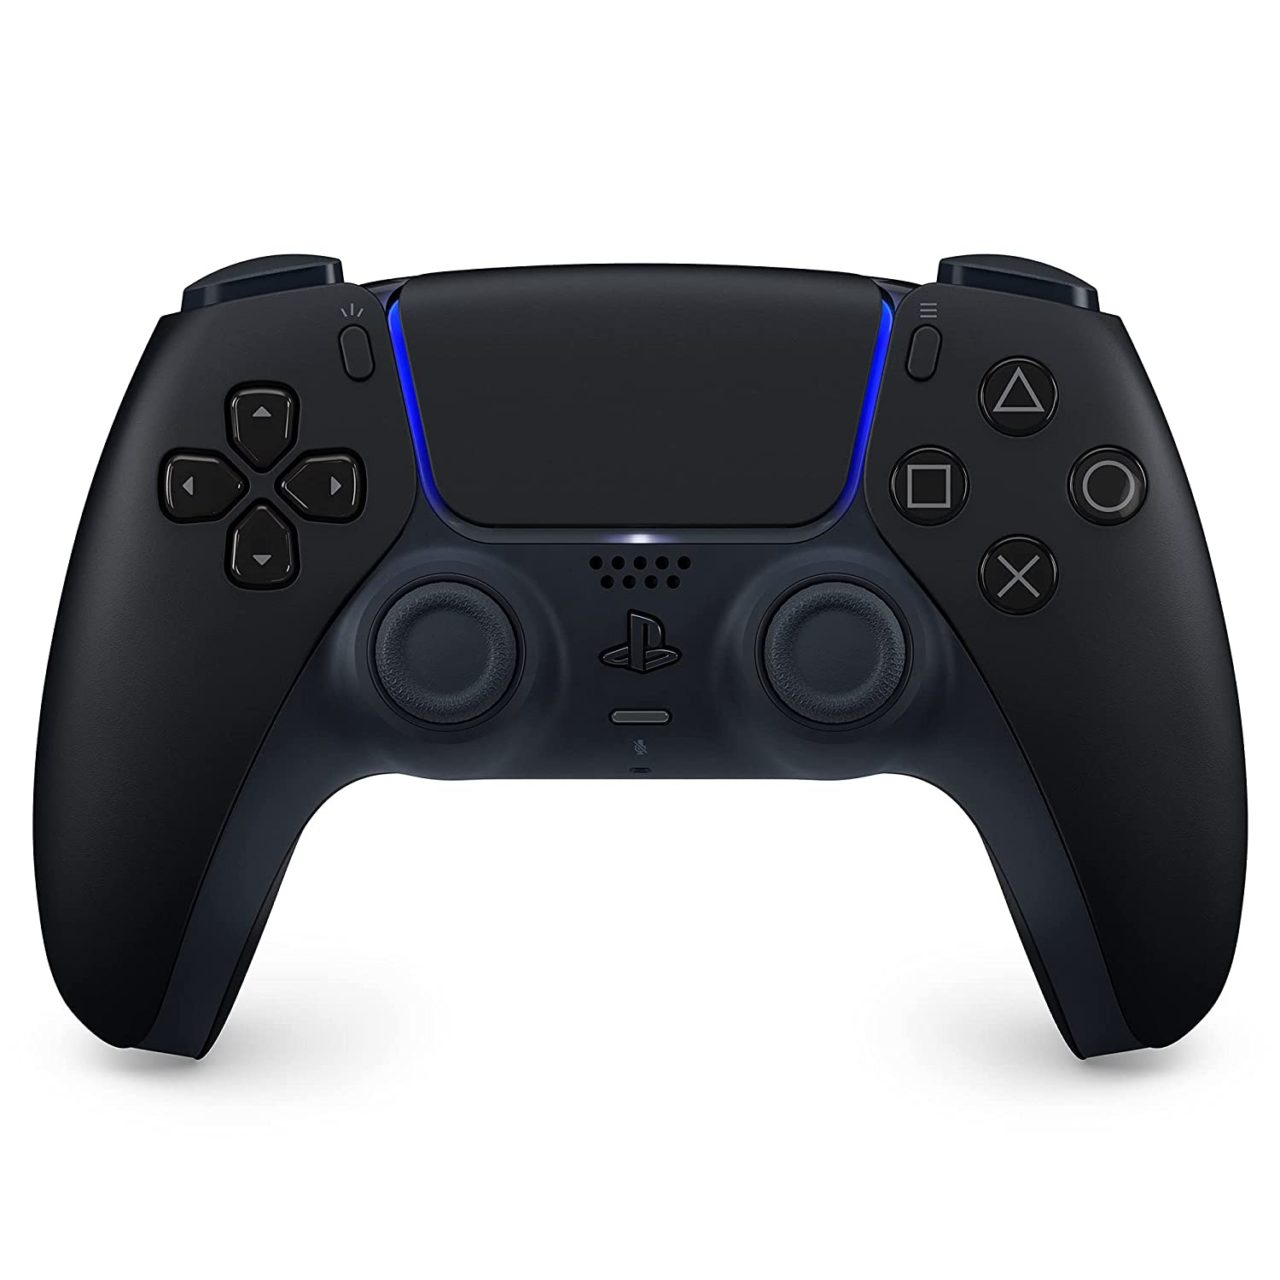 Sony Confirmed That PS5 Players Can Play With PS4 Players